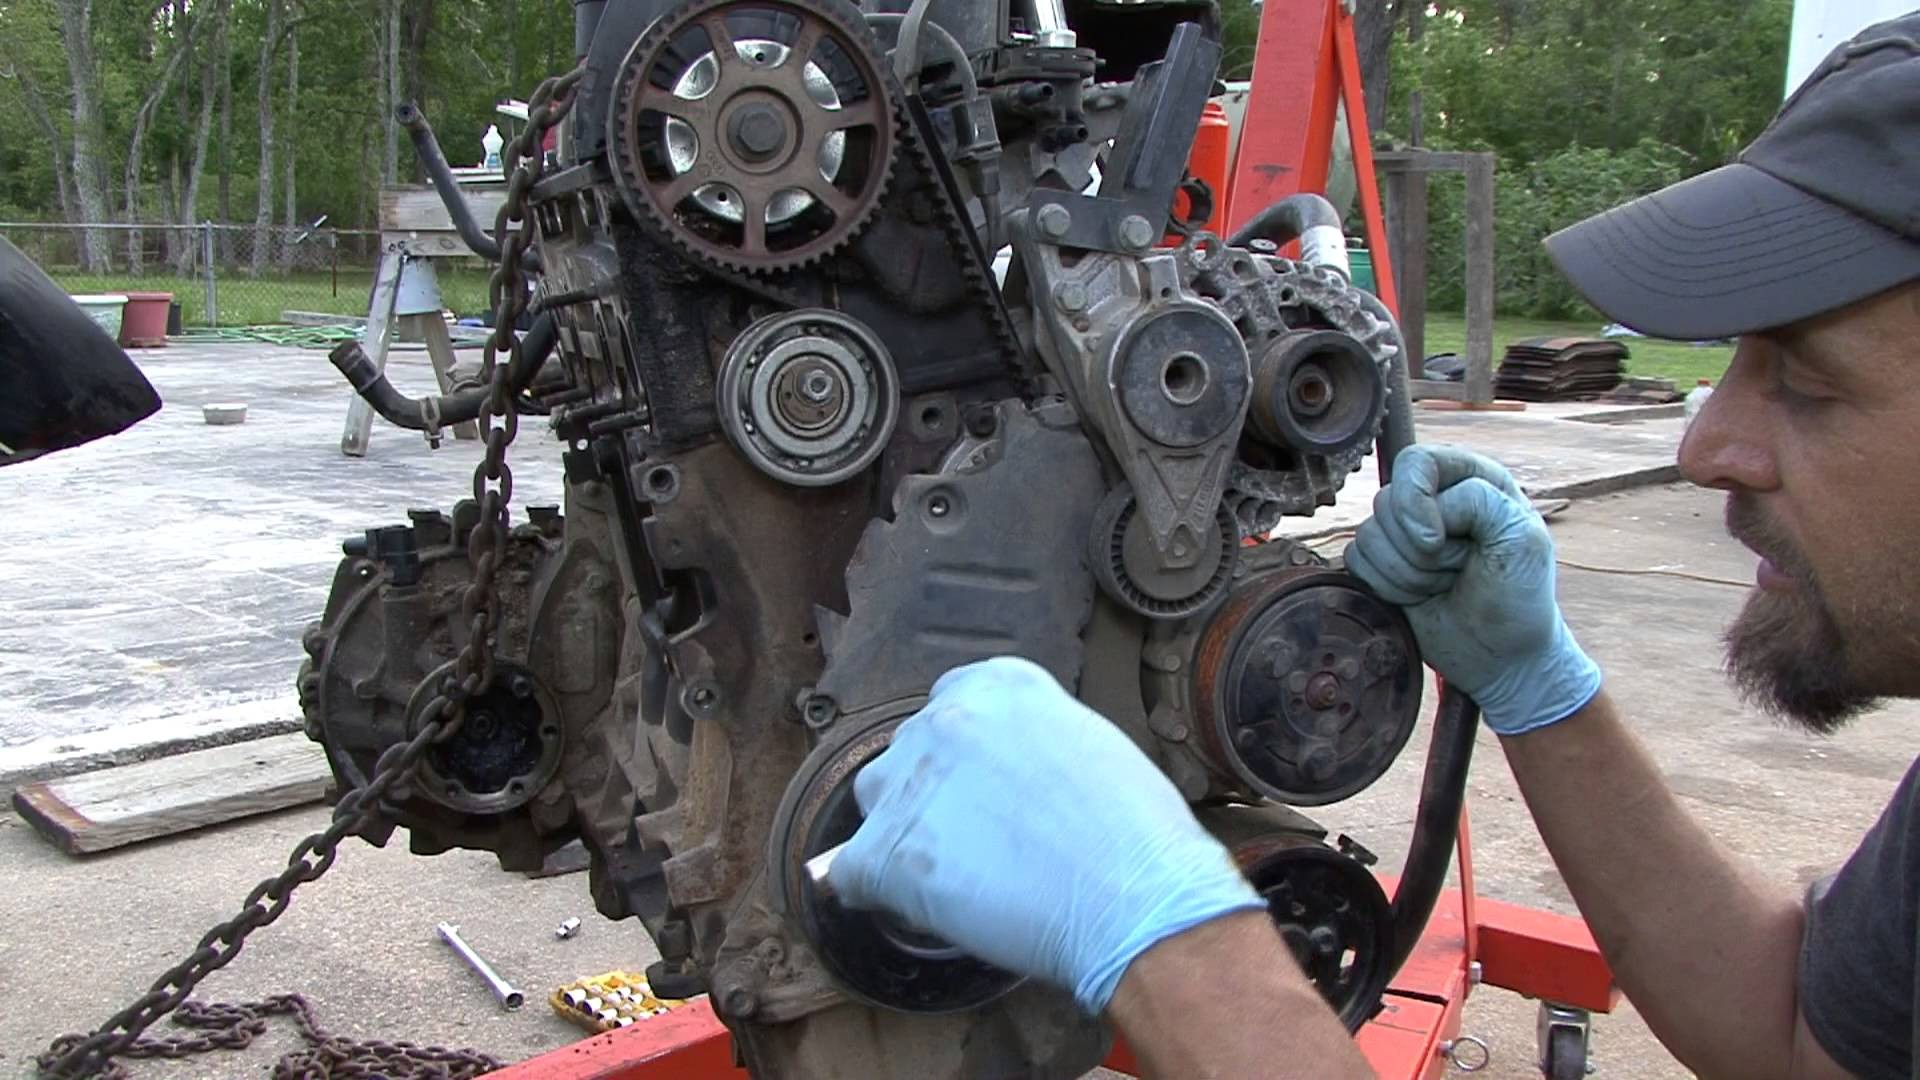 2001 Jetta Engine Diagram How to Do A Timing Belt On Your 98 05 Jetta 2 0 Part 1 Of 2001 Jetta Engine Diagram